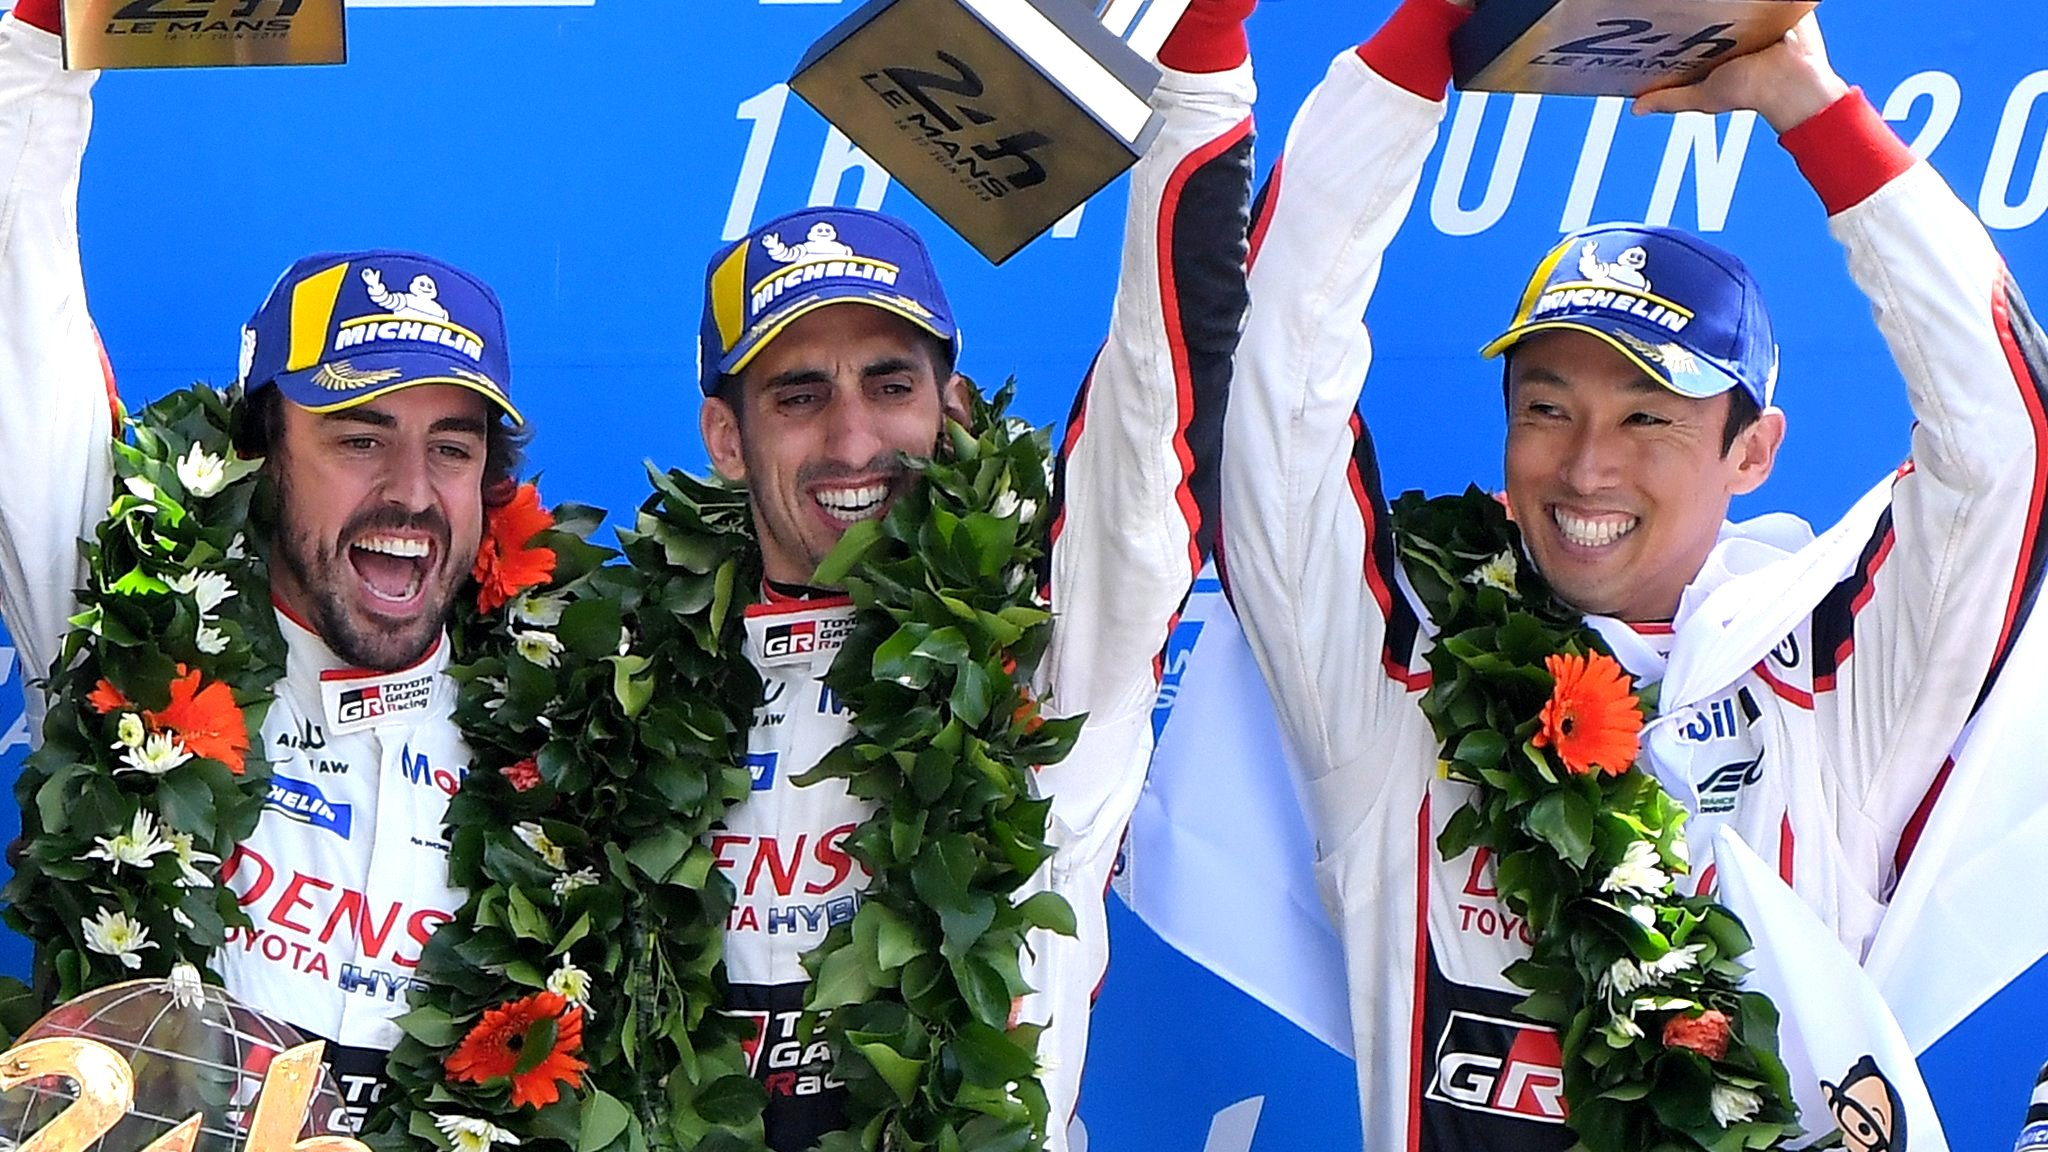 Alonso wins Le Mans 24 Hours for second leg of motorsport's 'triple crown'